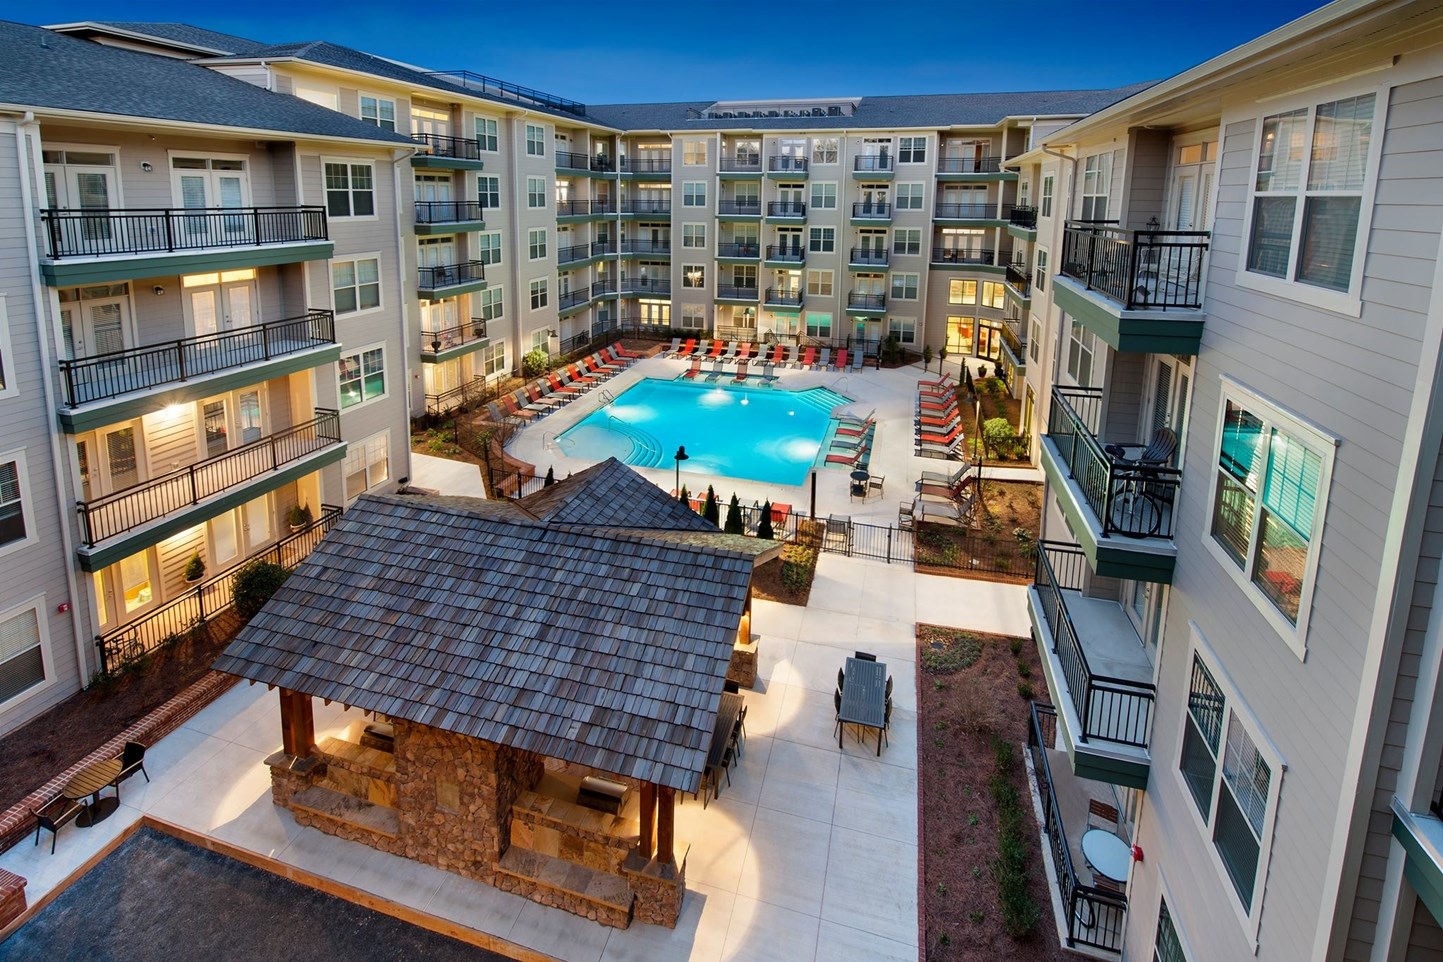 20 best apartments in kennesaw ga with pictures solutioingenieria Image collections